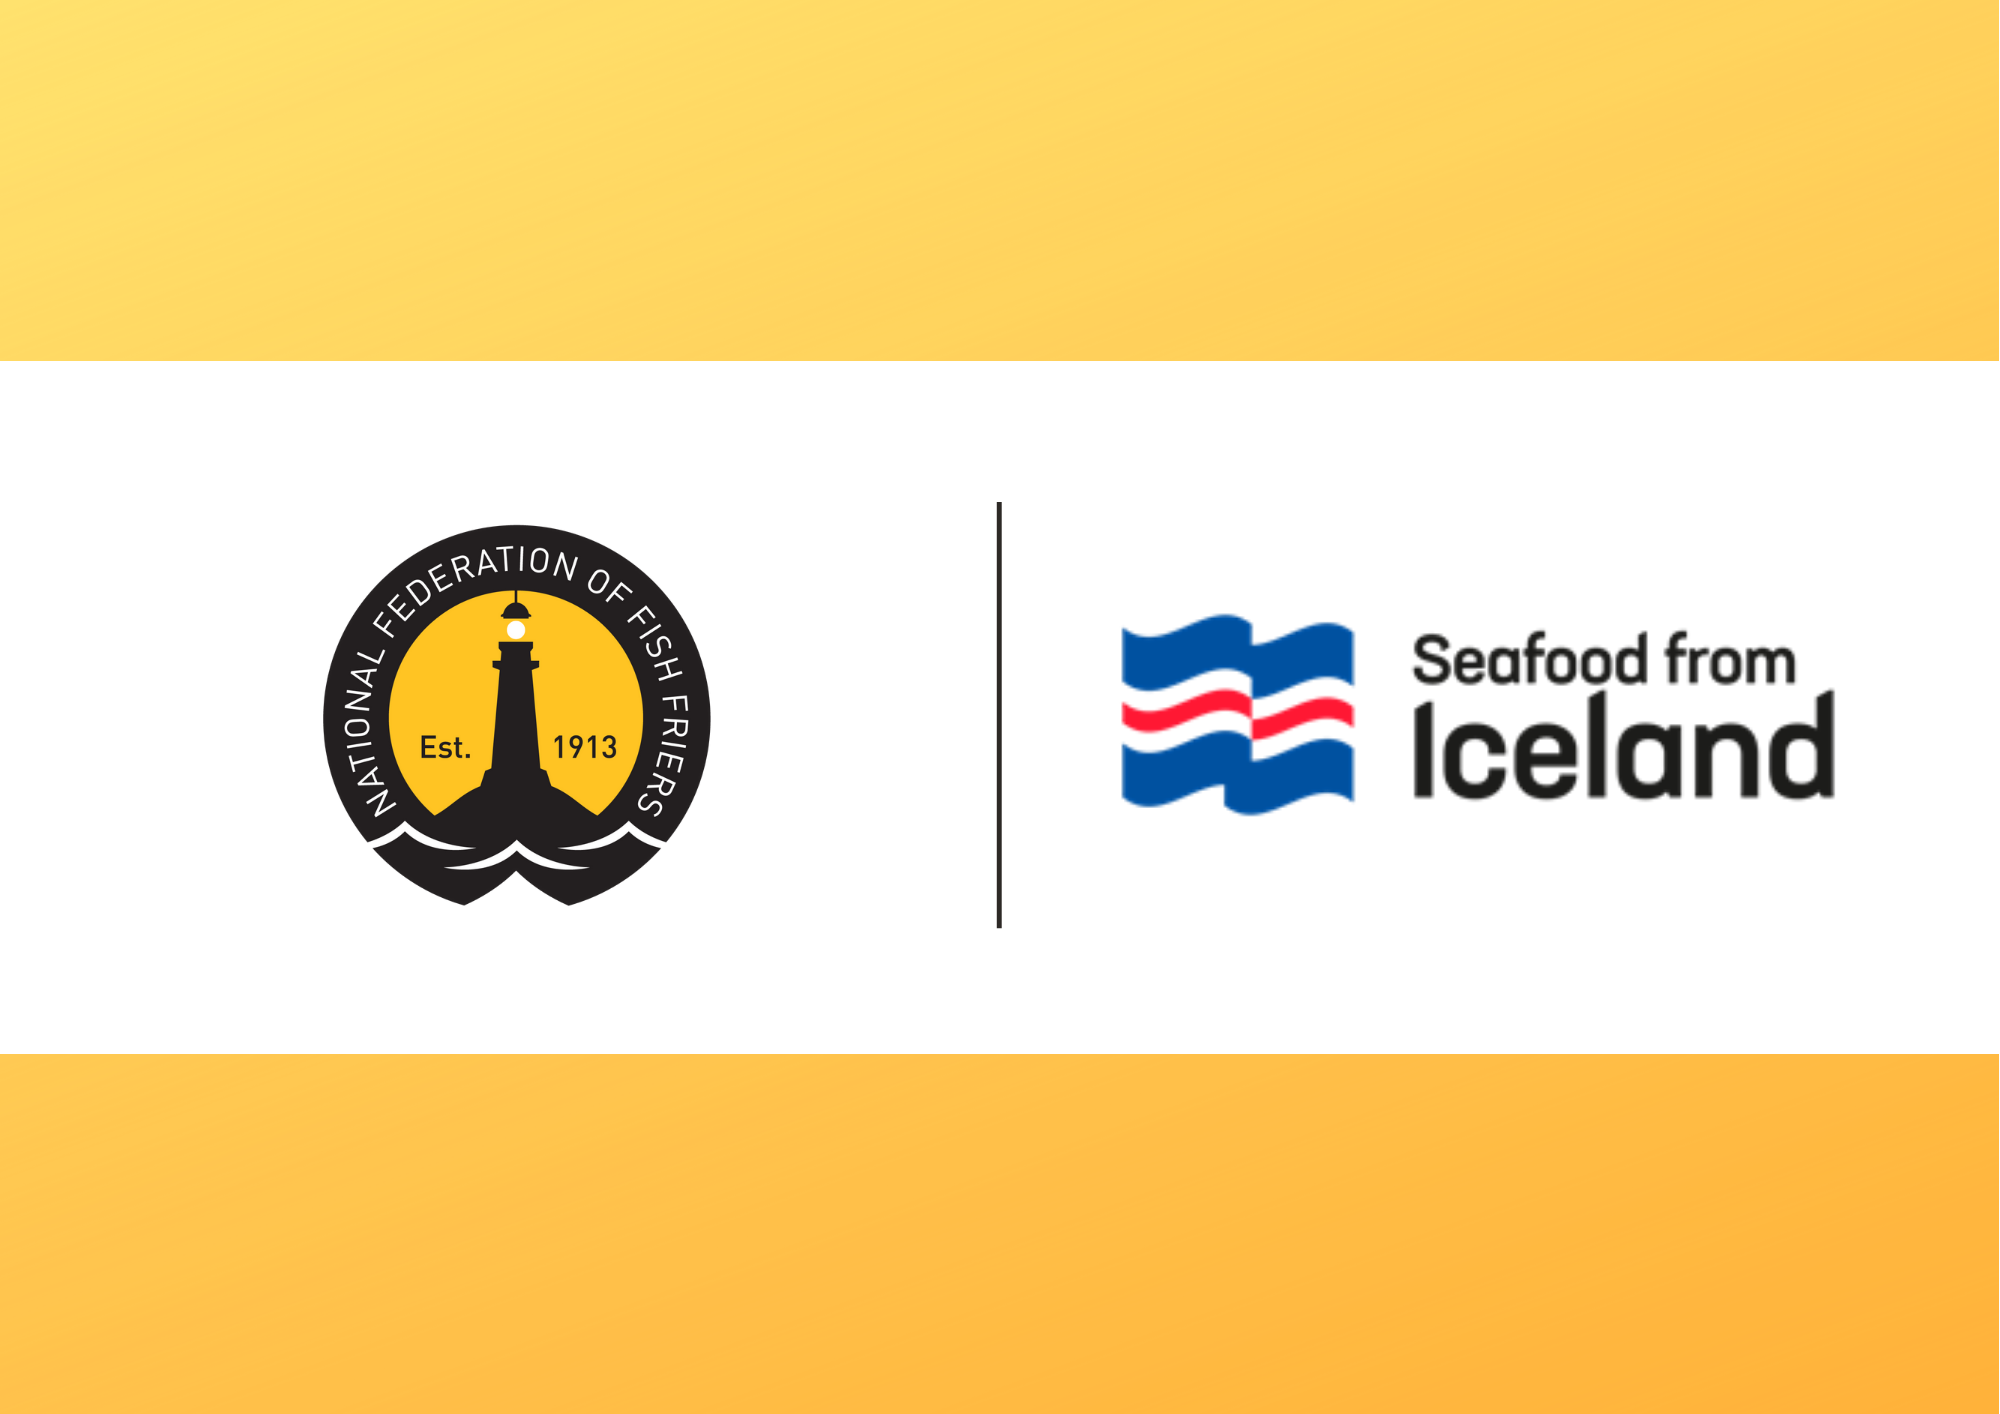 Seafood from Iceland joins the NFFF as an Associate Member